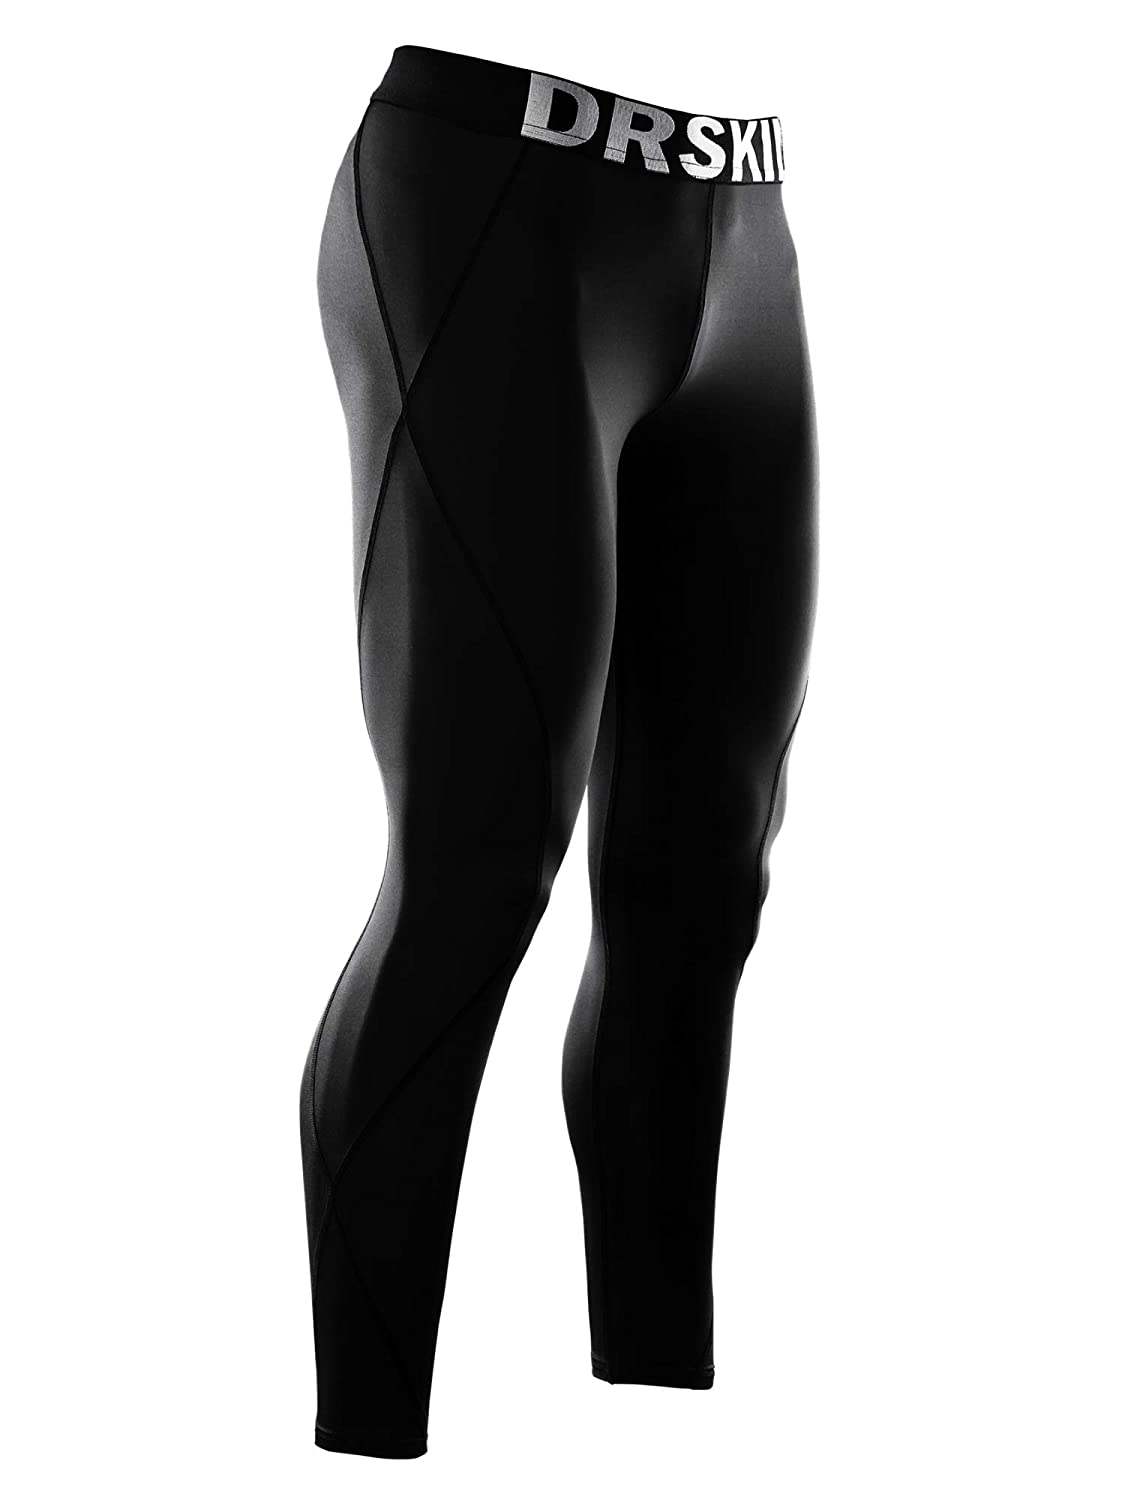 067ebb27481149 DRSKIN Men's Thermal Wintergear Fleece ColdGear Compression Tight Base  Layer Long Under Pants